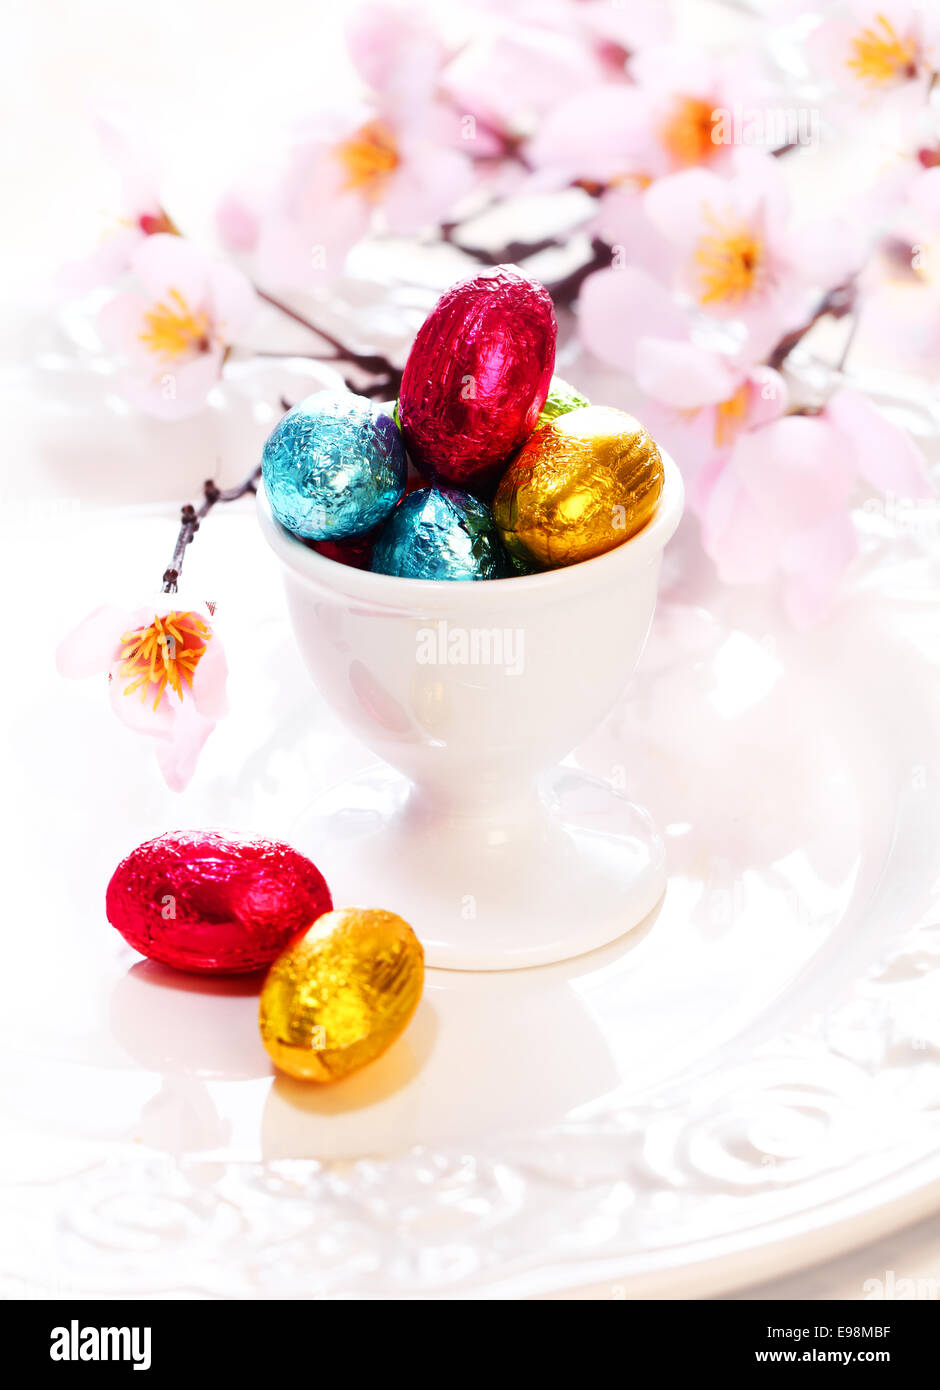 An eggcup full of tiny colourful foil wrapped chocolate Easter Eggs with cherry blossom - Stock Image